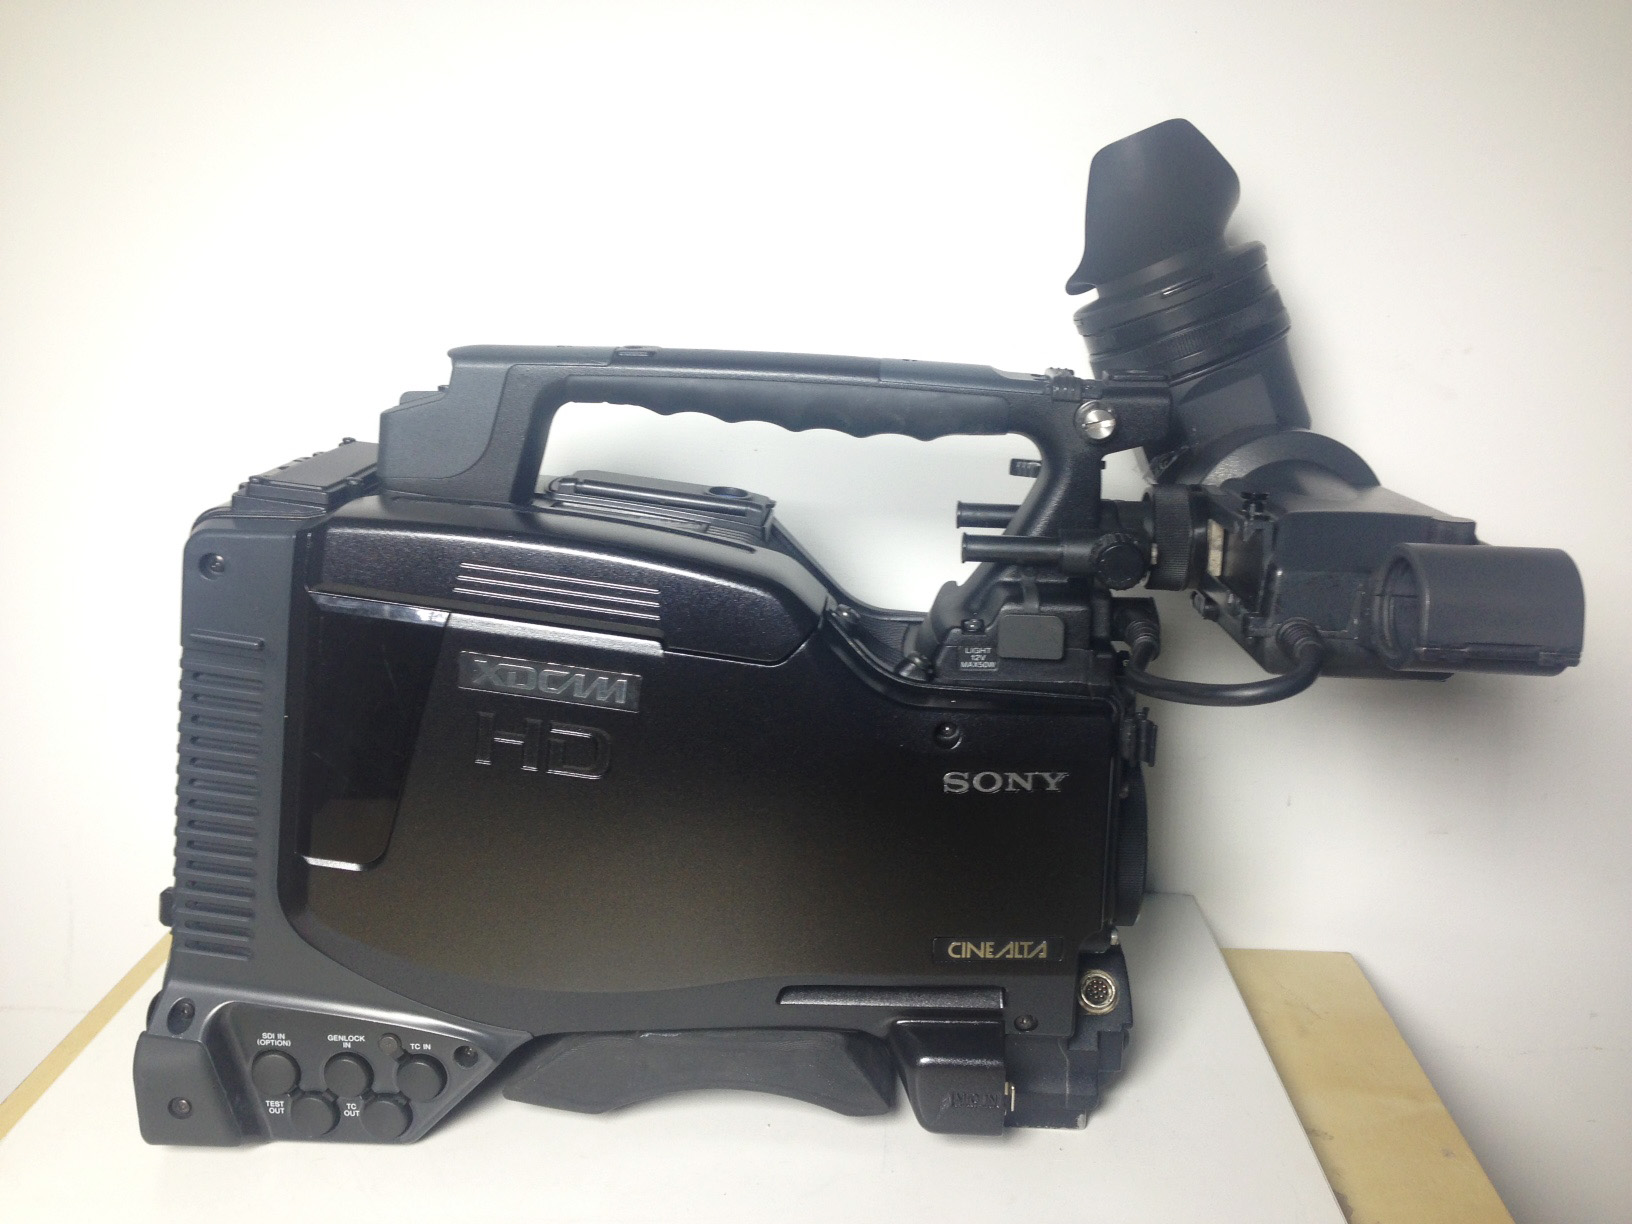 SONY PDW-F800 + HDVF-20A - Image #1